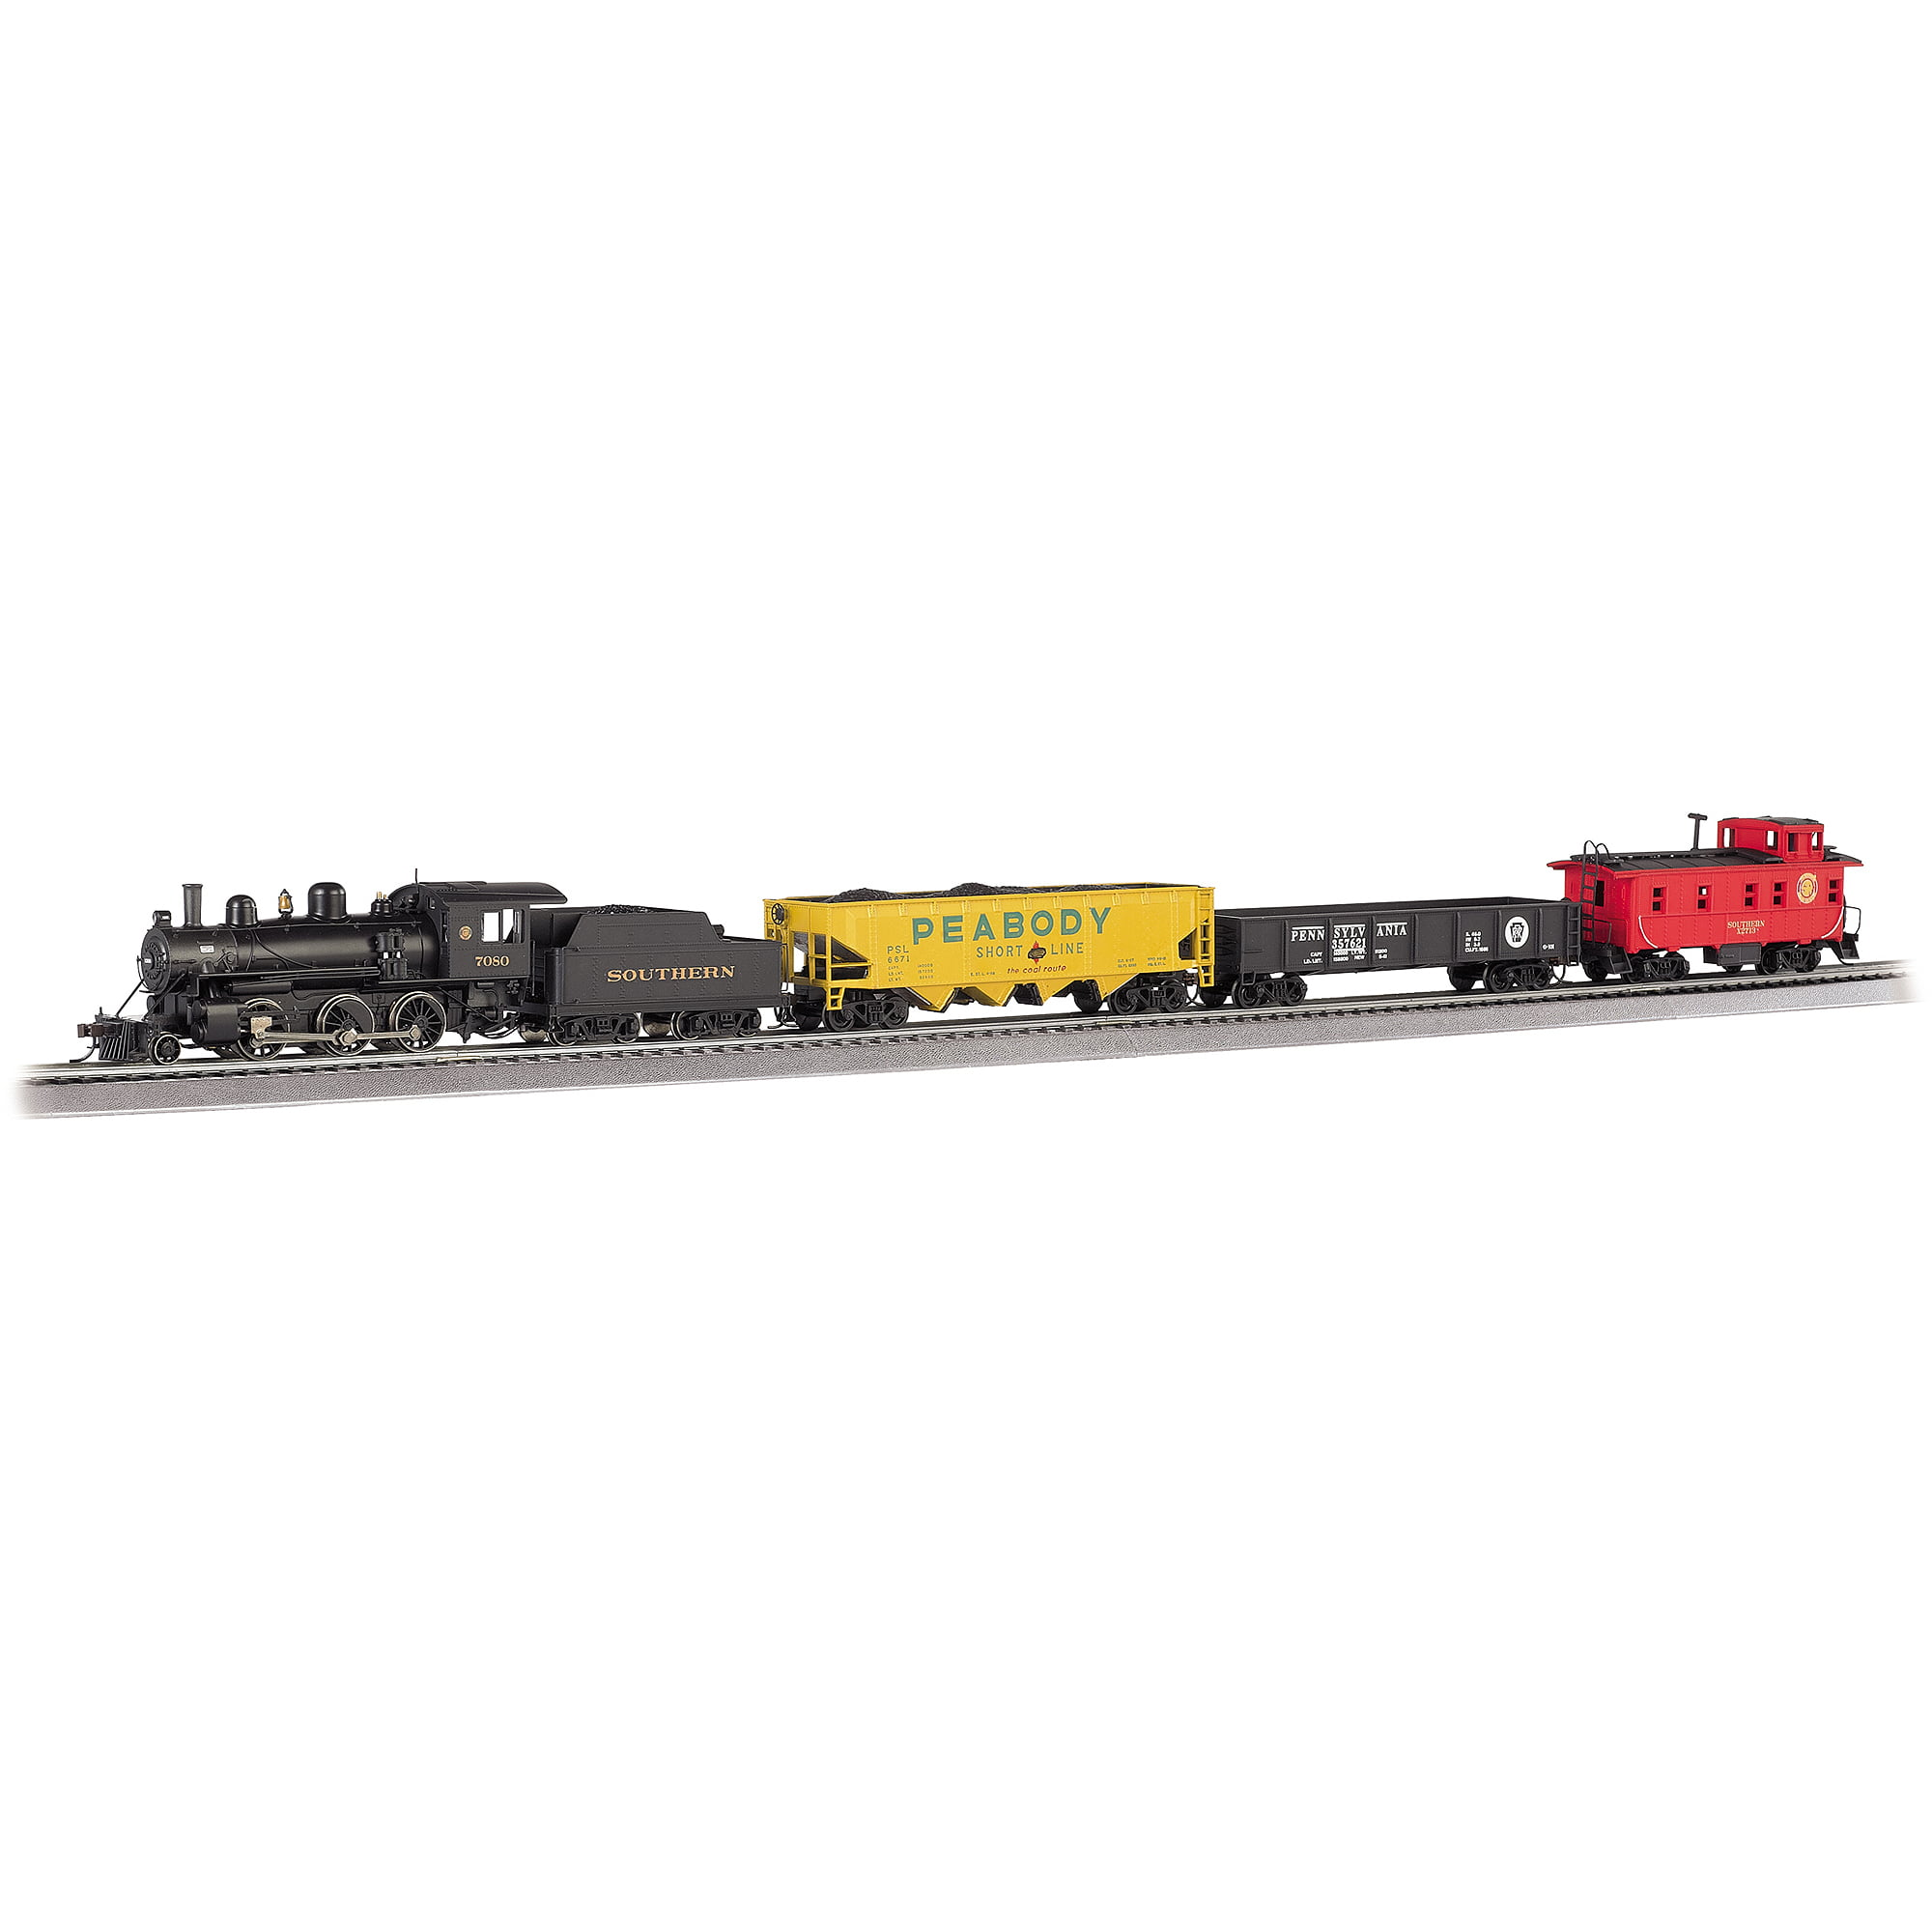 Bachmann Trains Echo Valley Express, HO Scale Ready-to-Run Electric Train Set with Sound Value Equipped... by Bachmann